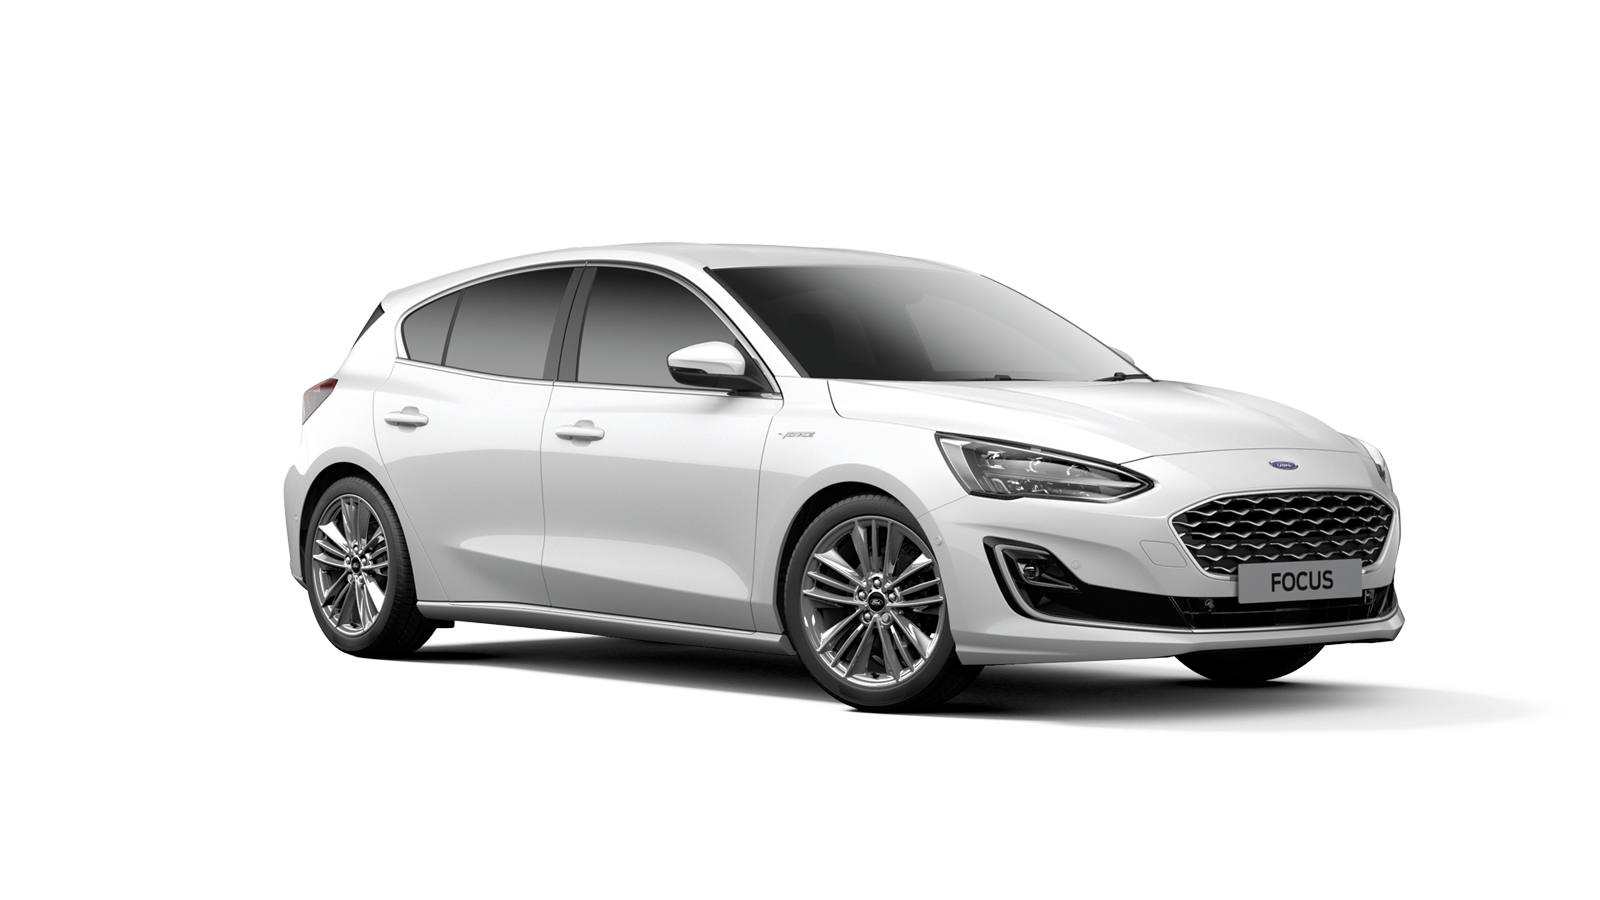 NEW FOCUS Vignale 5 Door in Frozen White